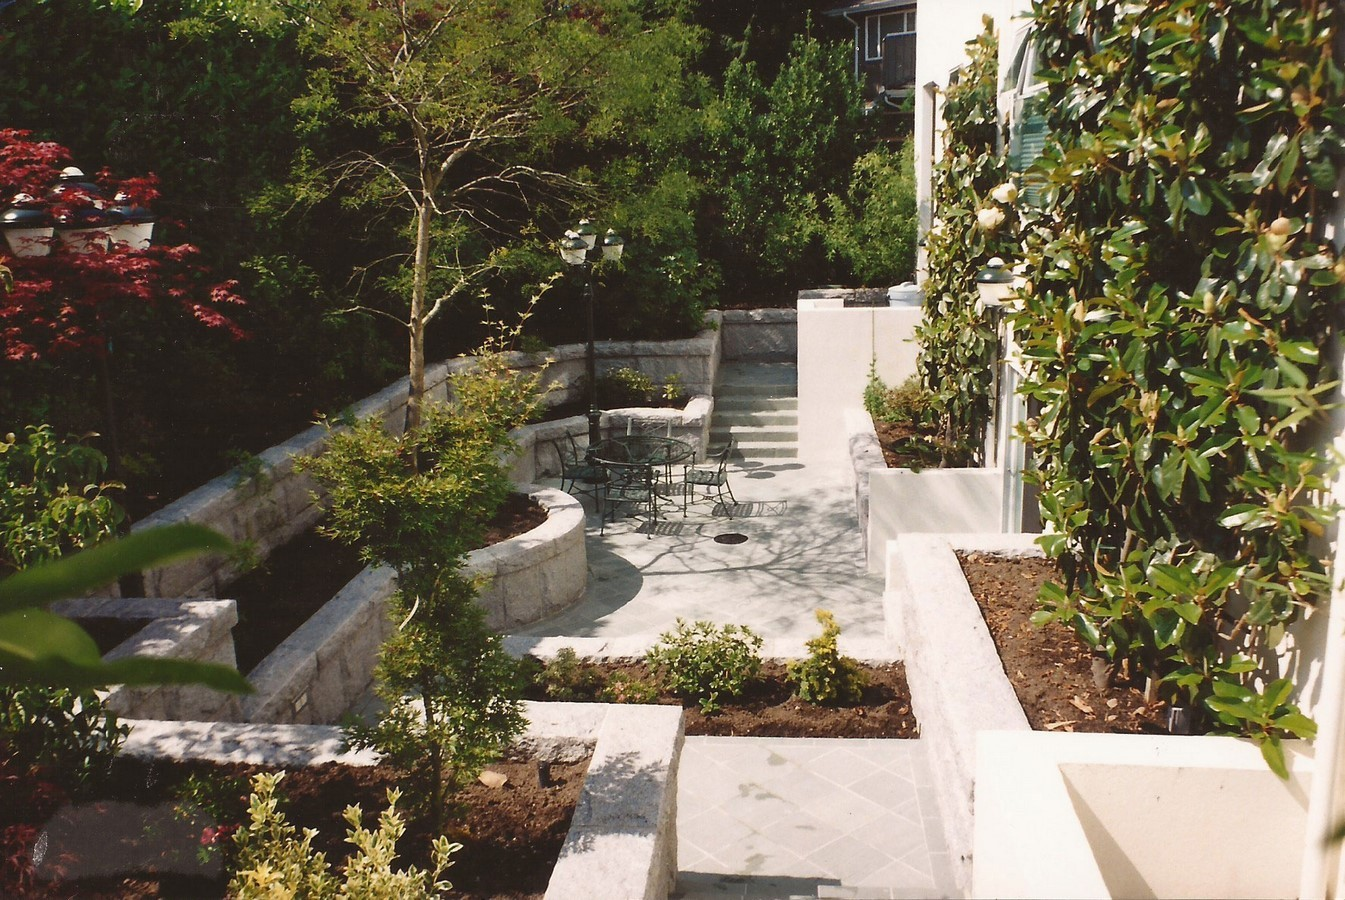 50 Ideas and Tips for Landscaping - Sheet51